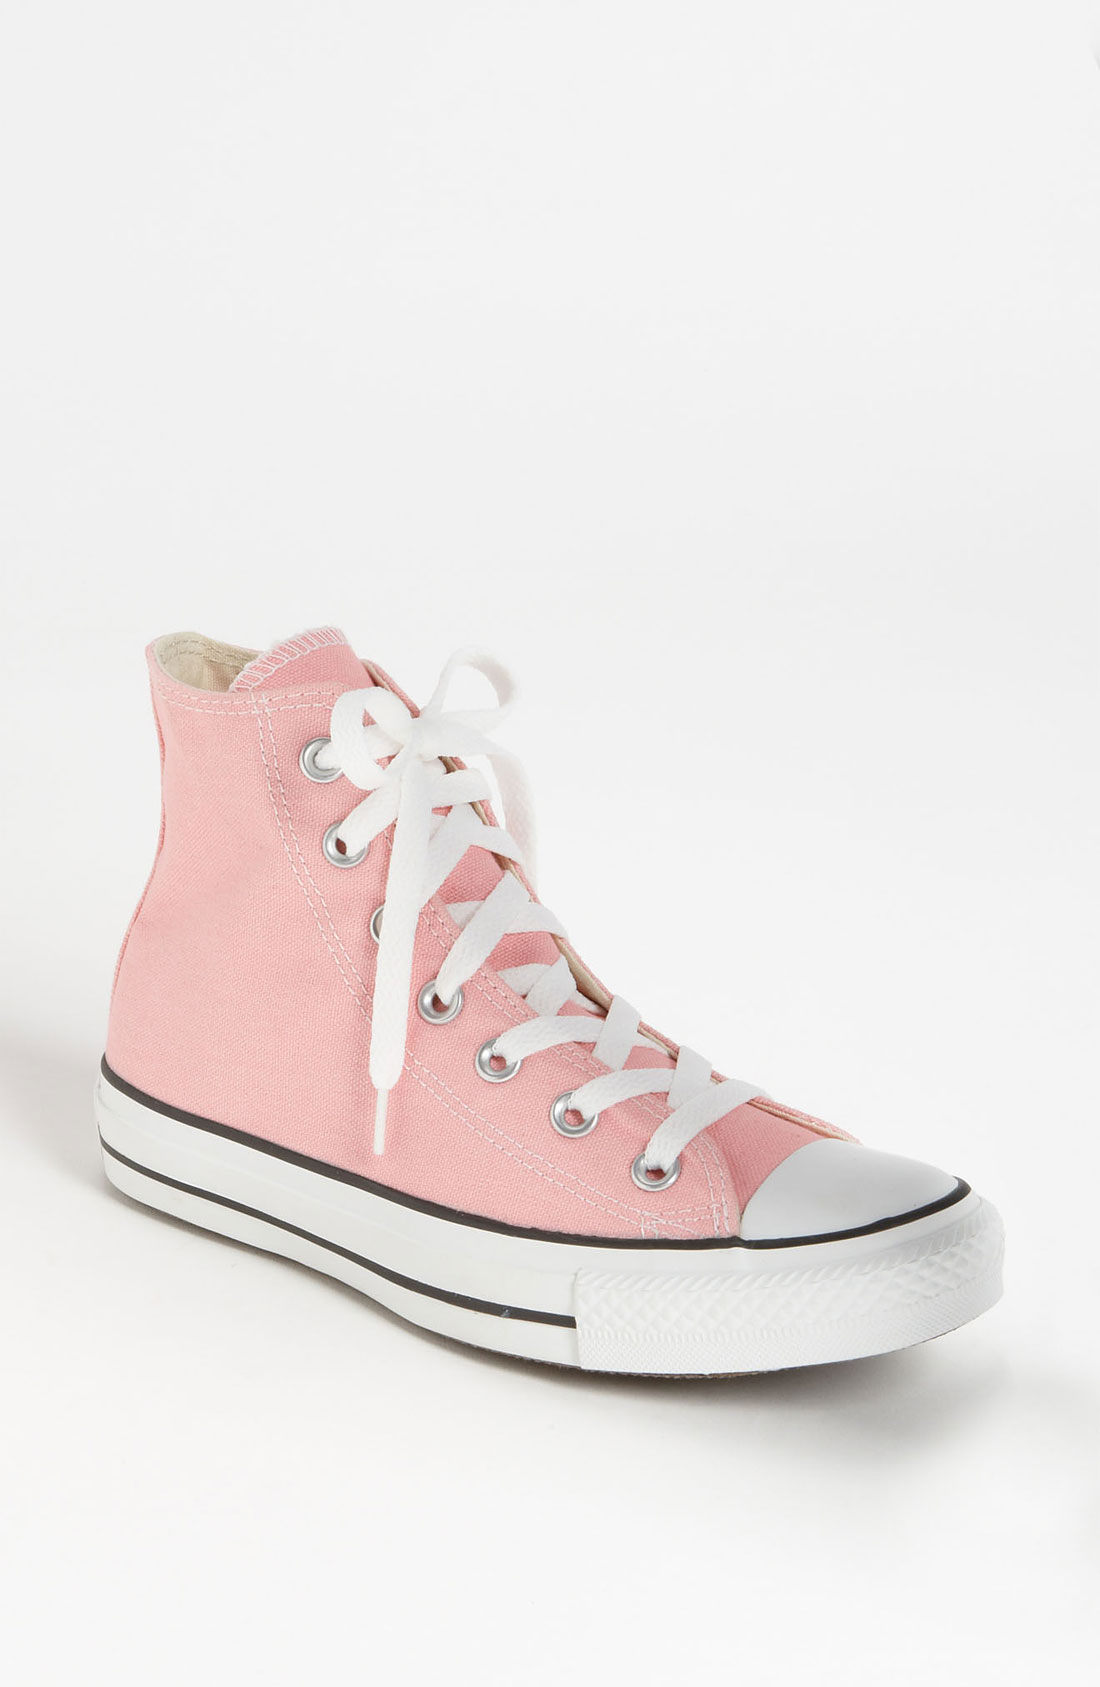 converse chuck taylor high top sneaker in pink lyst